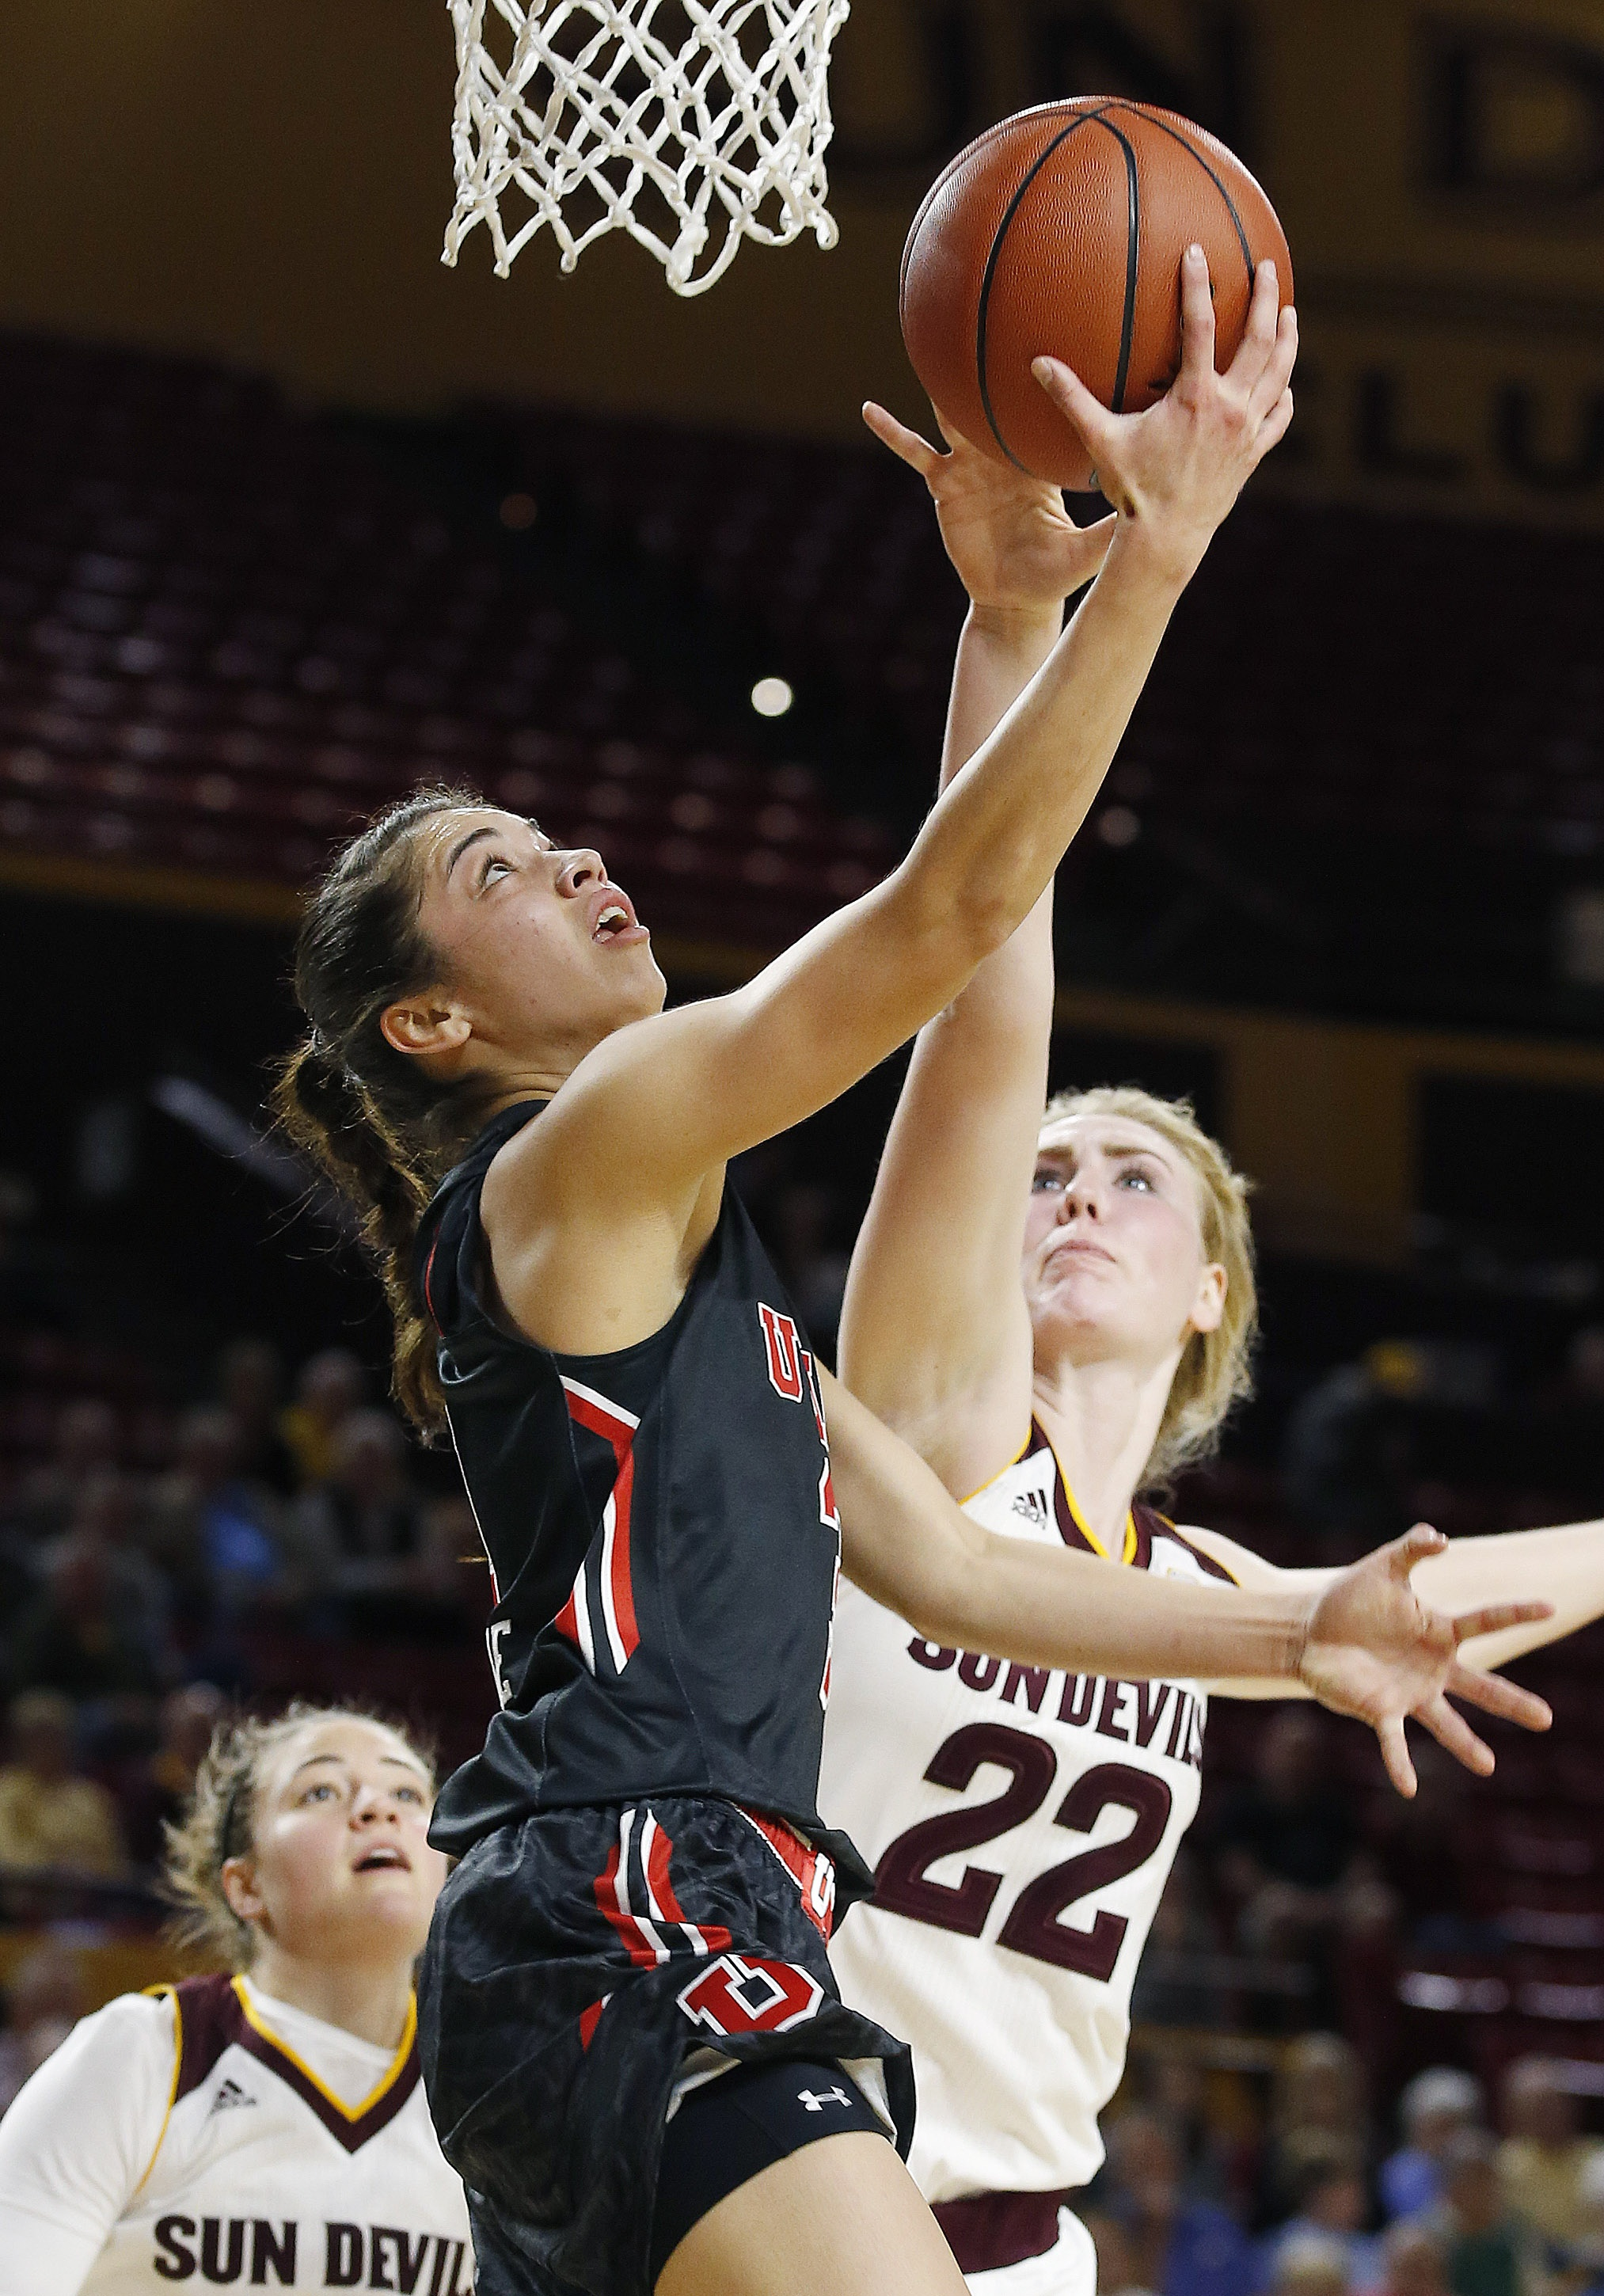 Utah's Malia Nawahine, center, shoots as she gets past Arizona State's Quinn Dornstauder (22) and Katie Hempen, left, during the first half of an NCAA college basketball game Sunday, Jan. 17, 2016, in Tempe, Ariz. (AP Photo/Ross D. Franklin)